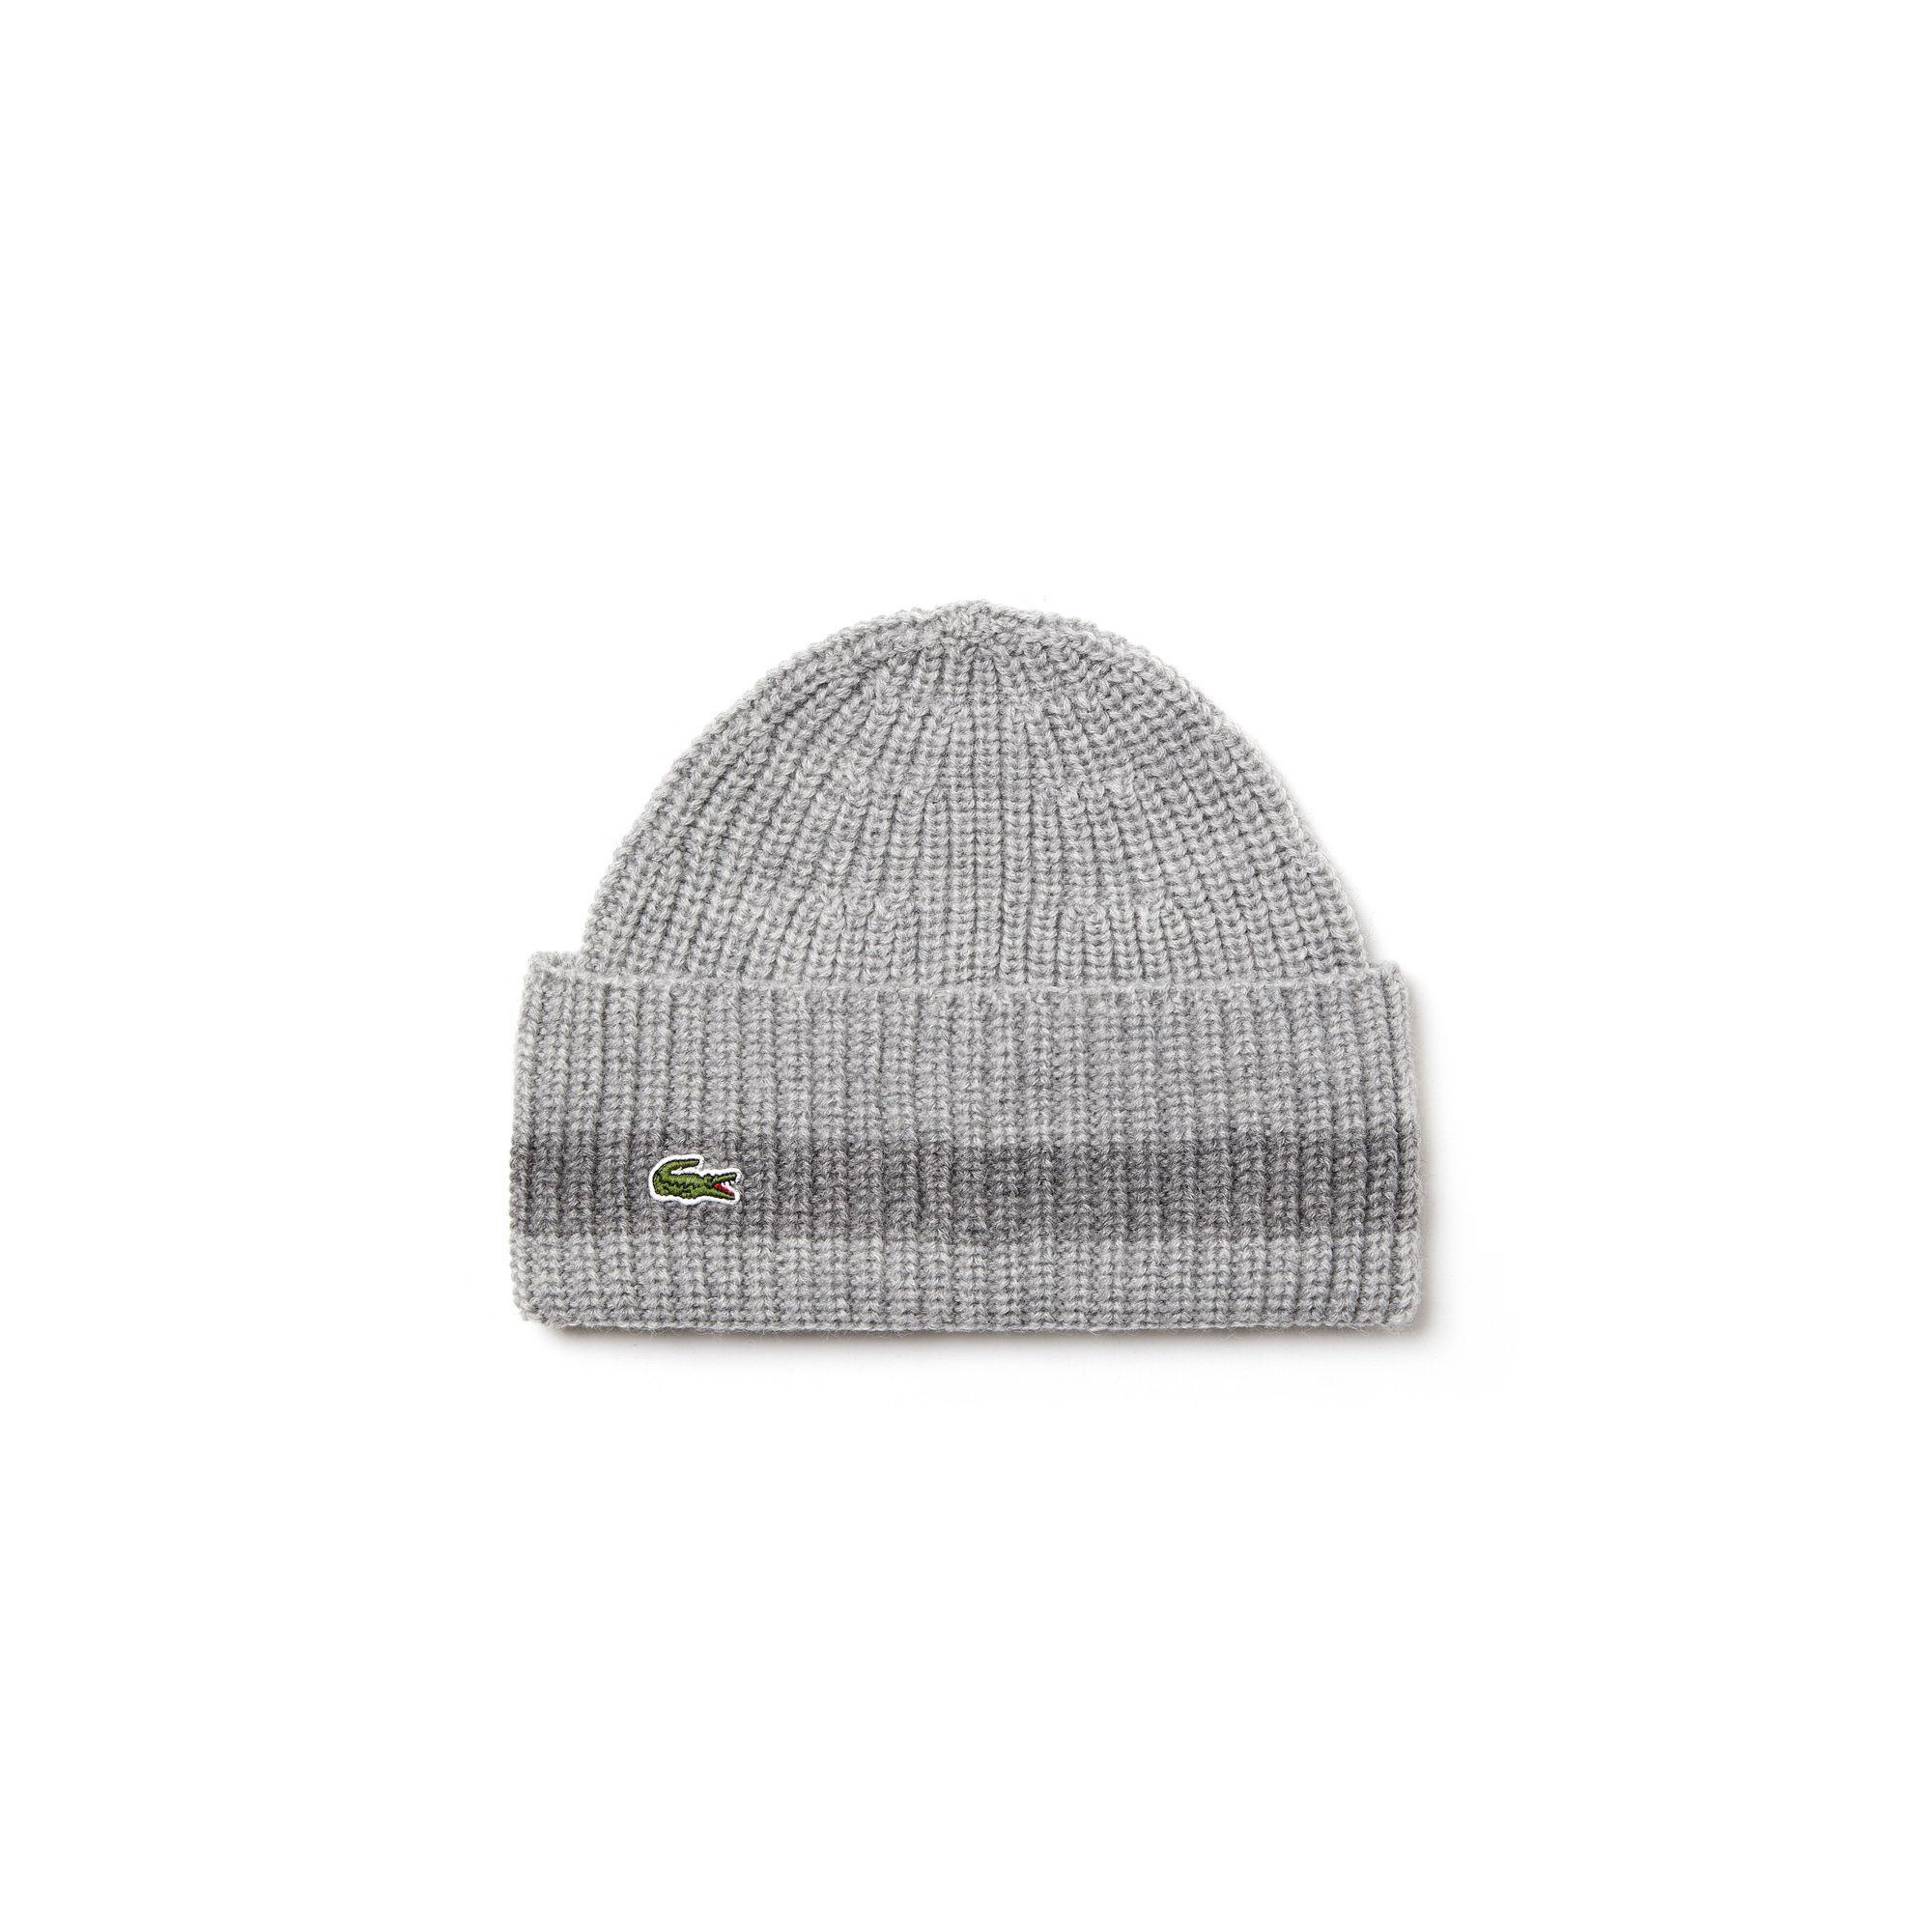 14fac61a4e3 Lyst - Lacoste Turned Edge Ribbed Wool Beanie in Gray for Men